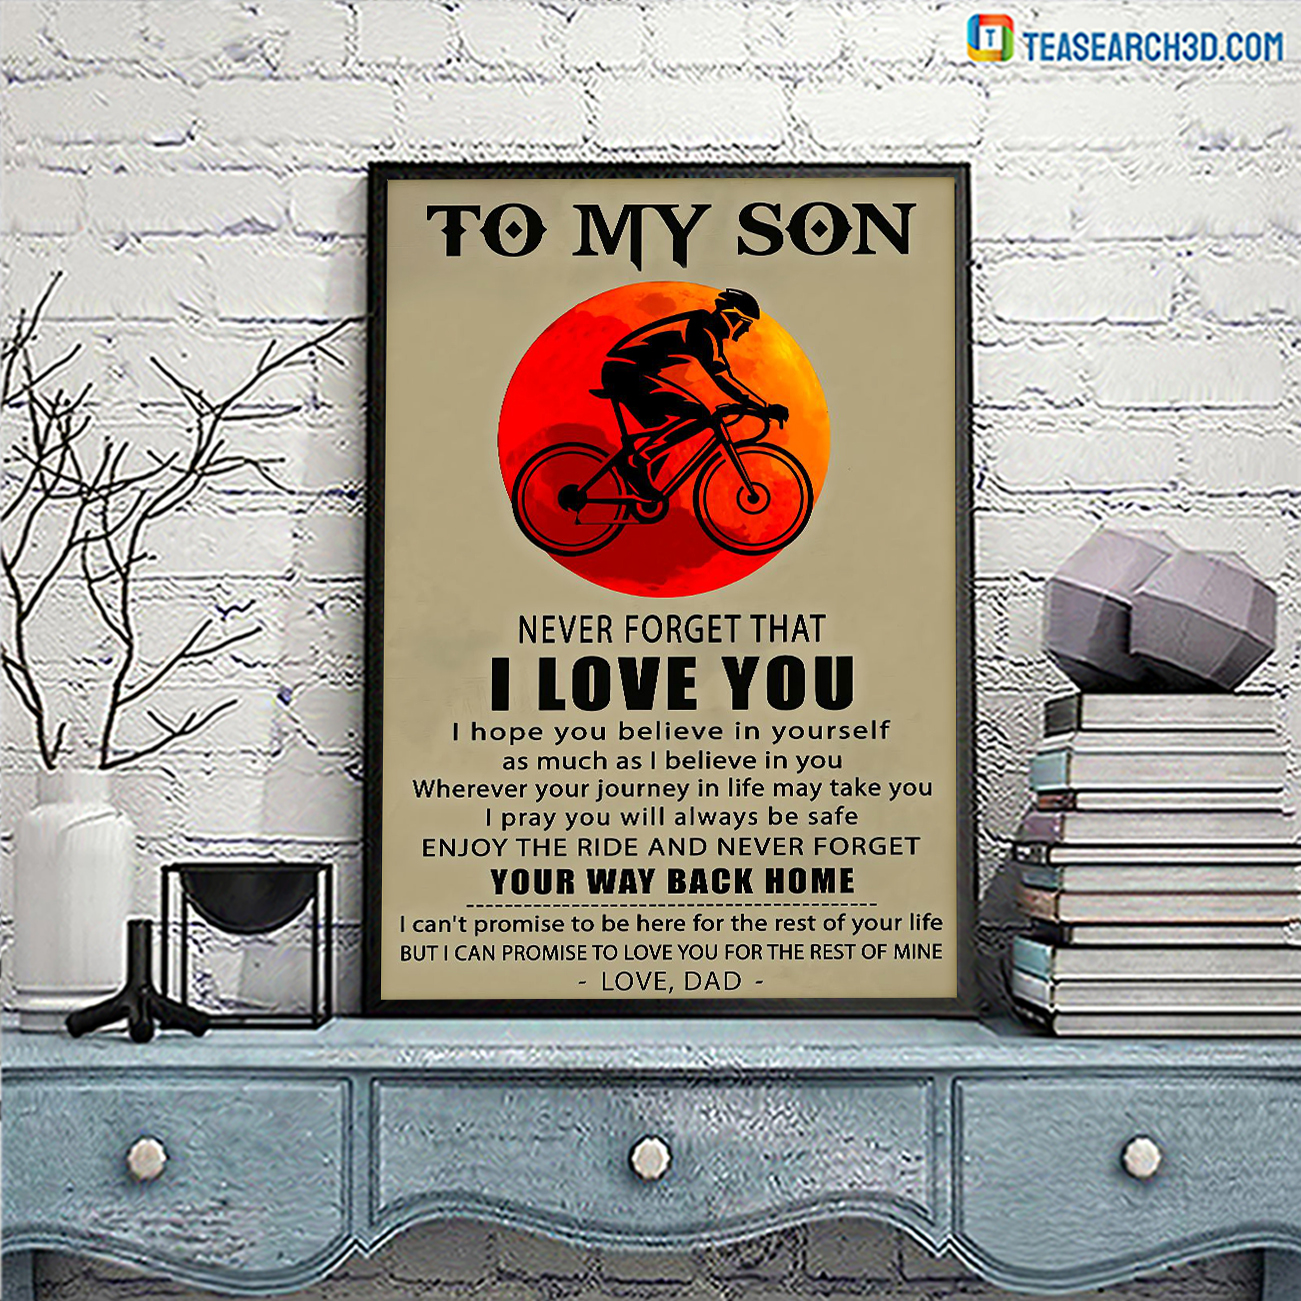 Cycling to my son never forget that I love you poster A3